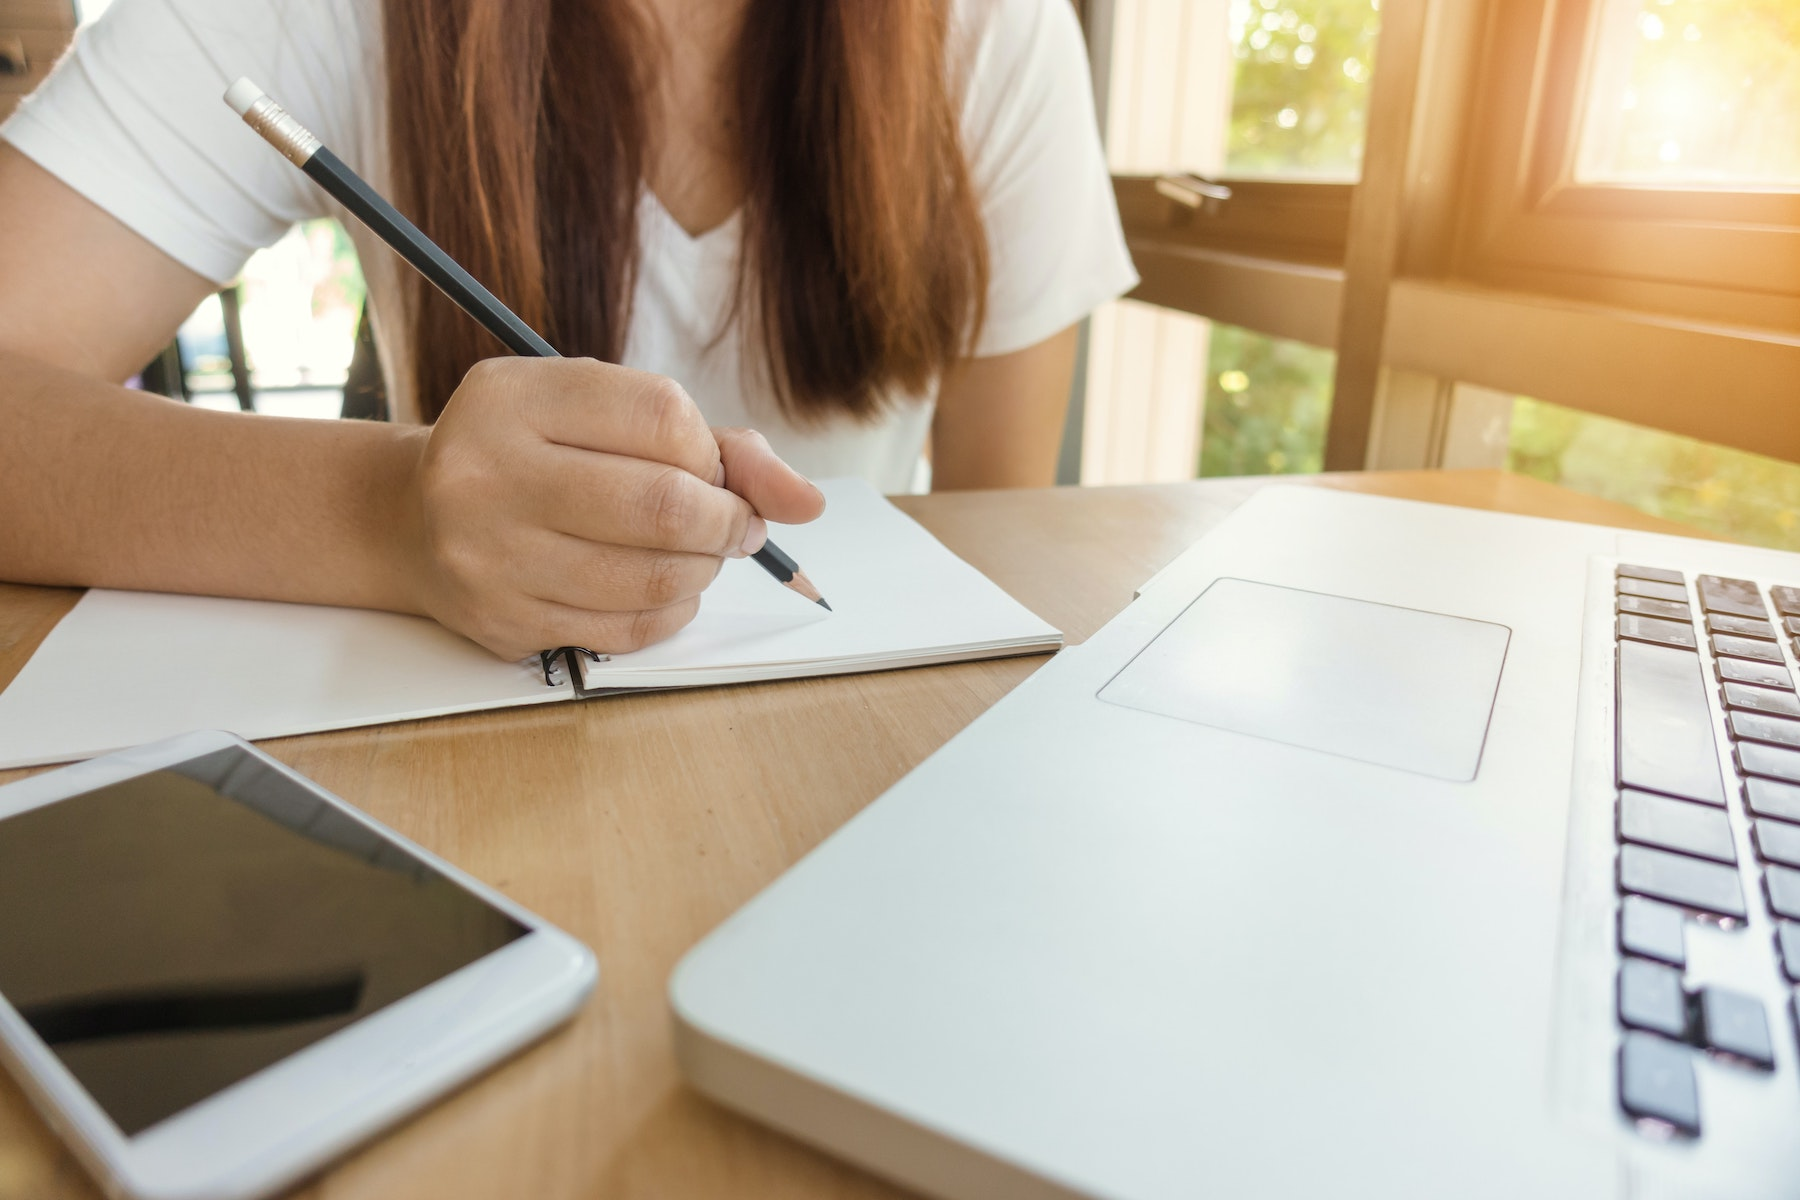 Top Tips How to Study from Home During the Coronavirus